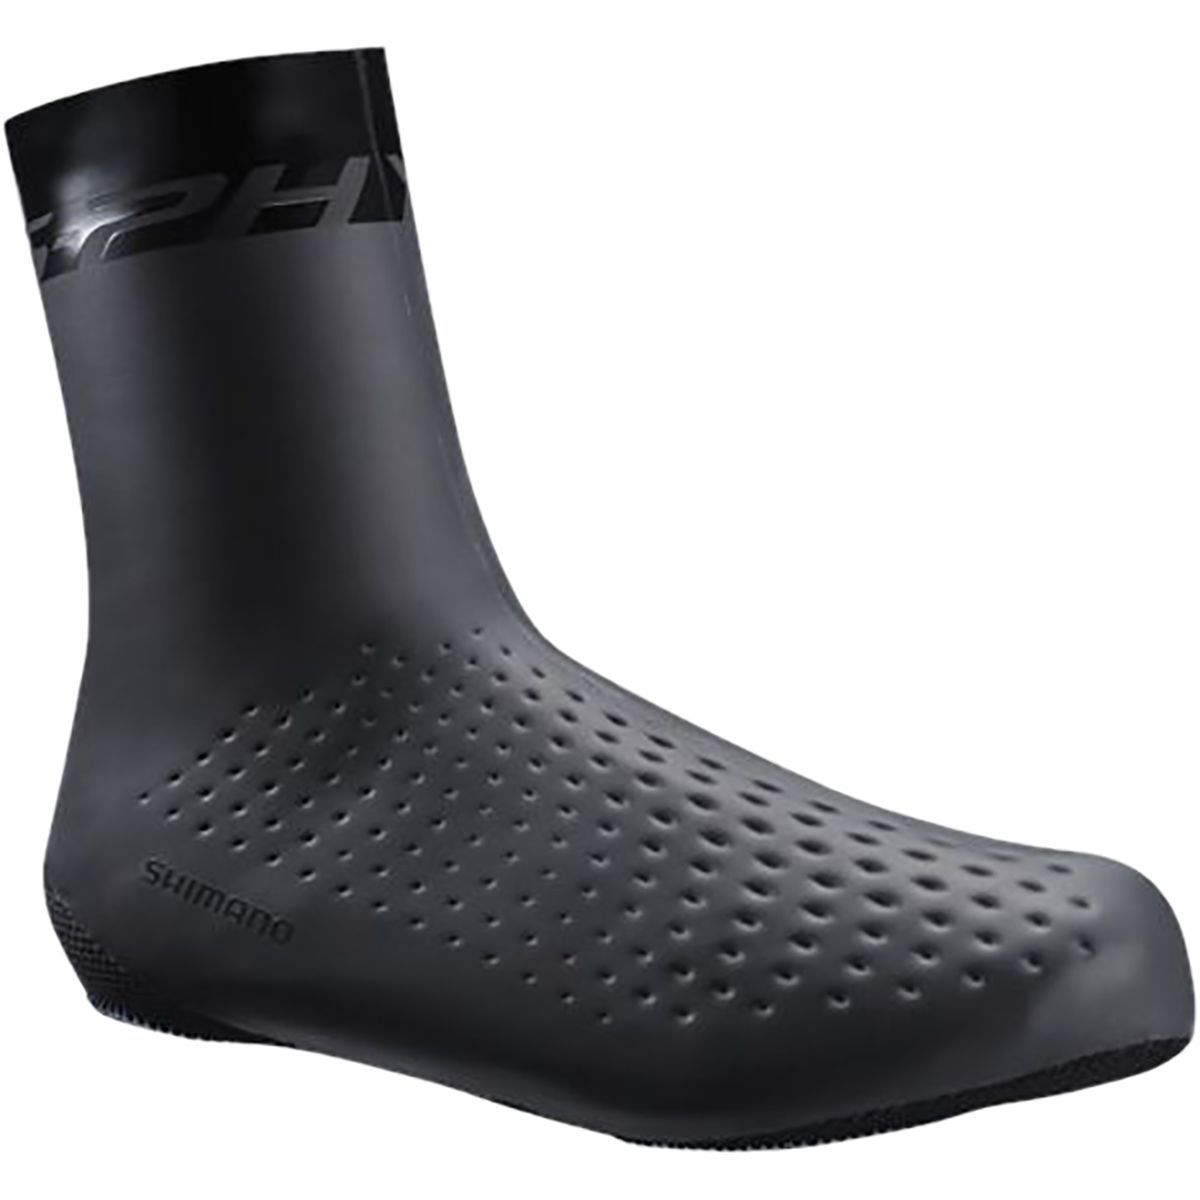 Shimano S Phyre Insulated Shoe Cover Shoe Covers Shimano Cycling Shimano Cycling Shoes